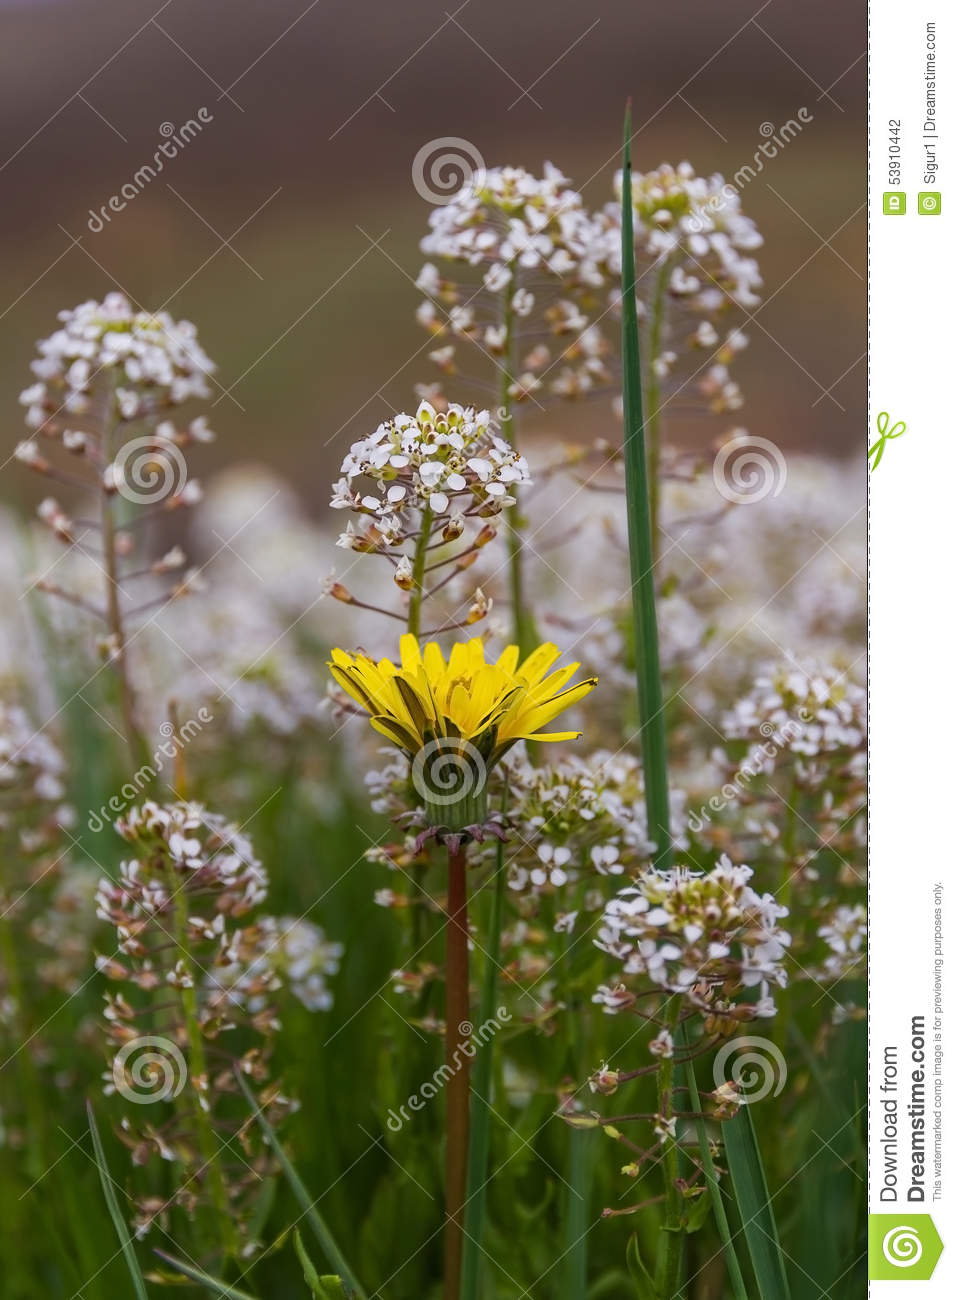 White And Yellow Flowers In Meadow Stock Photo Image Of Outdoors